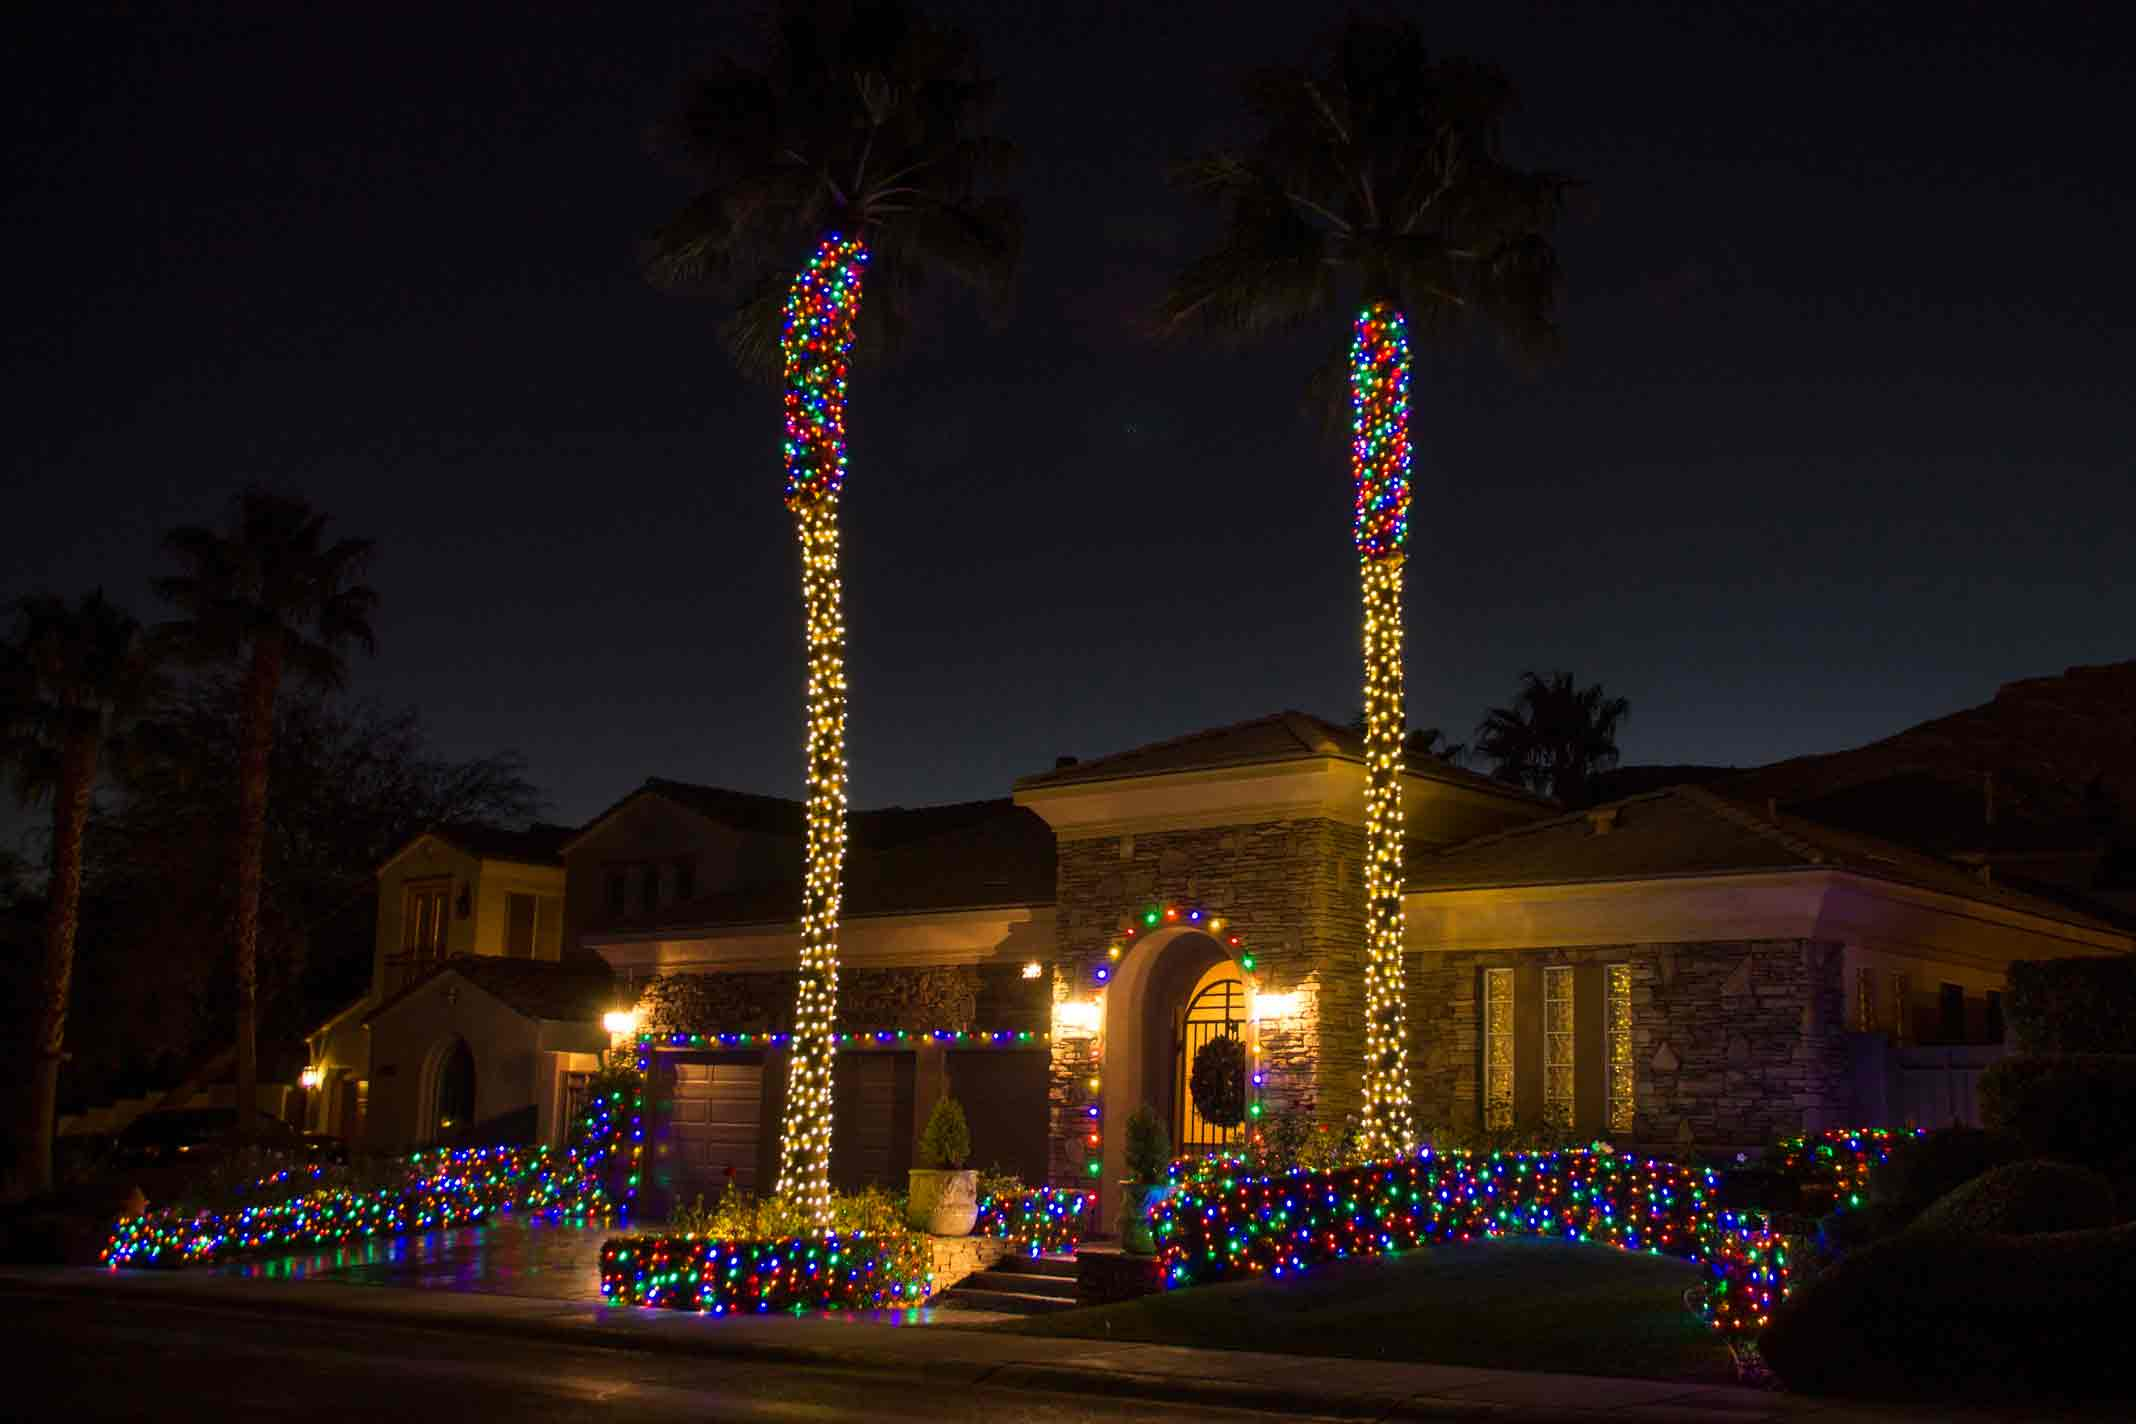 LED lights on palms by Holiday Decorations in Las Vegas